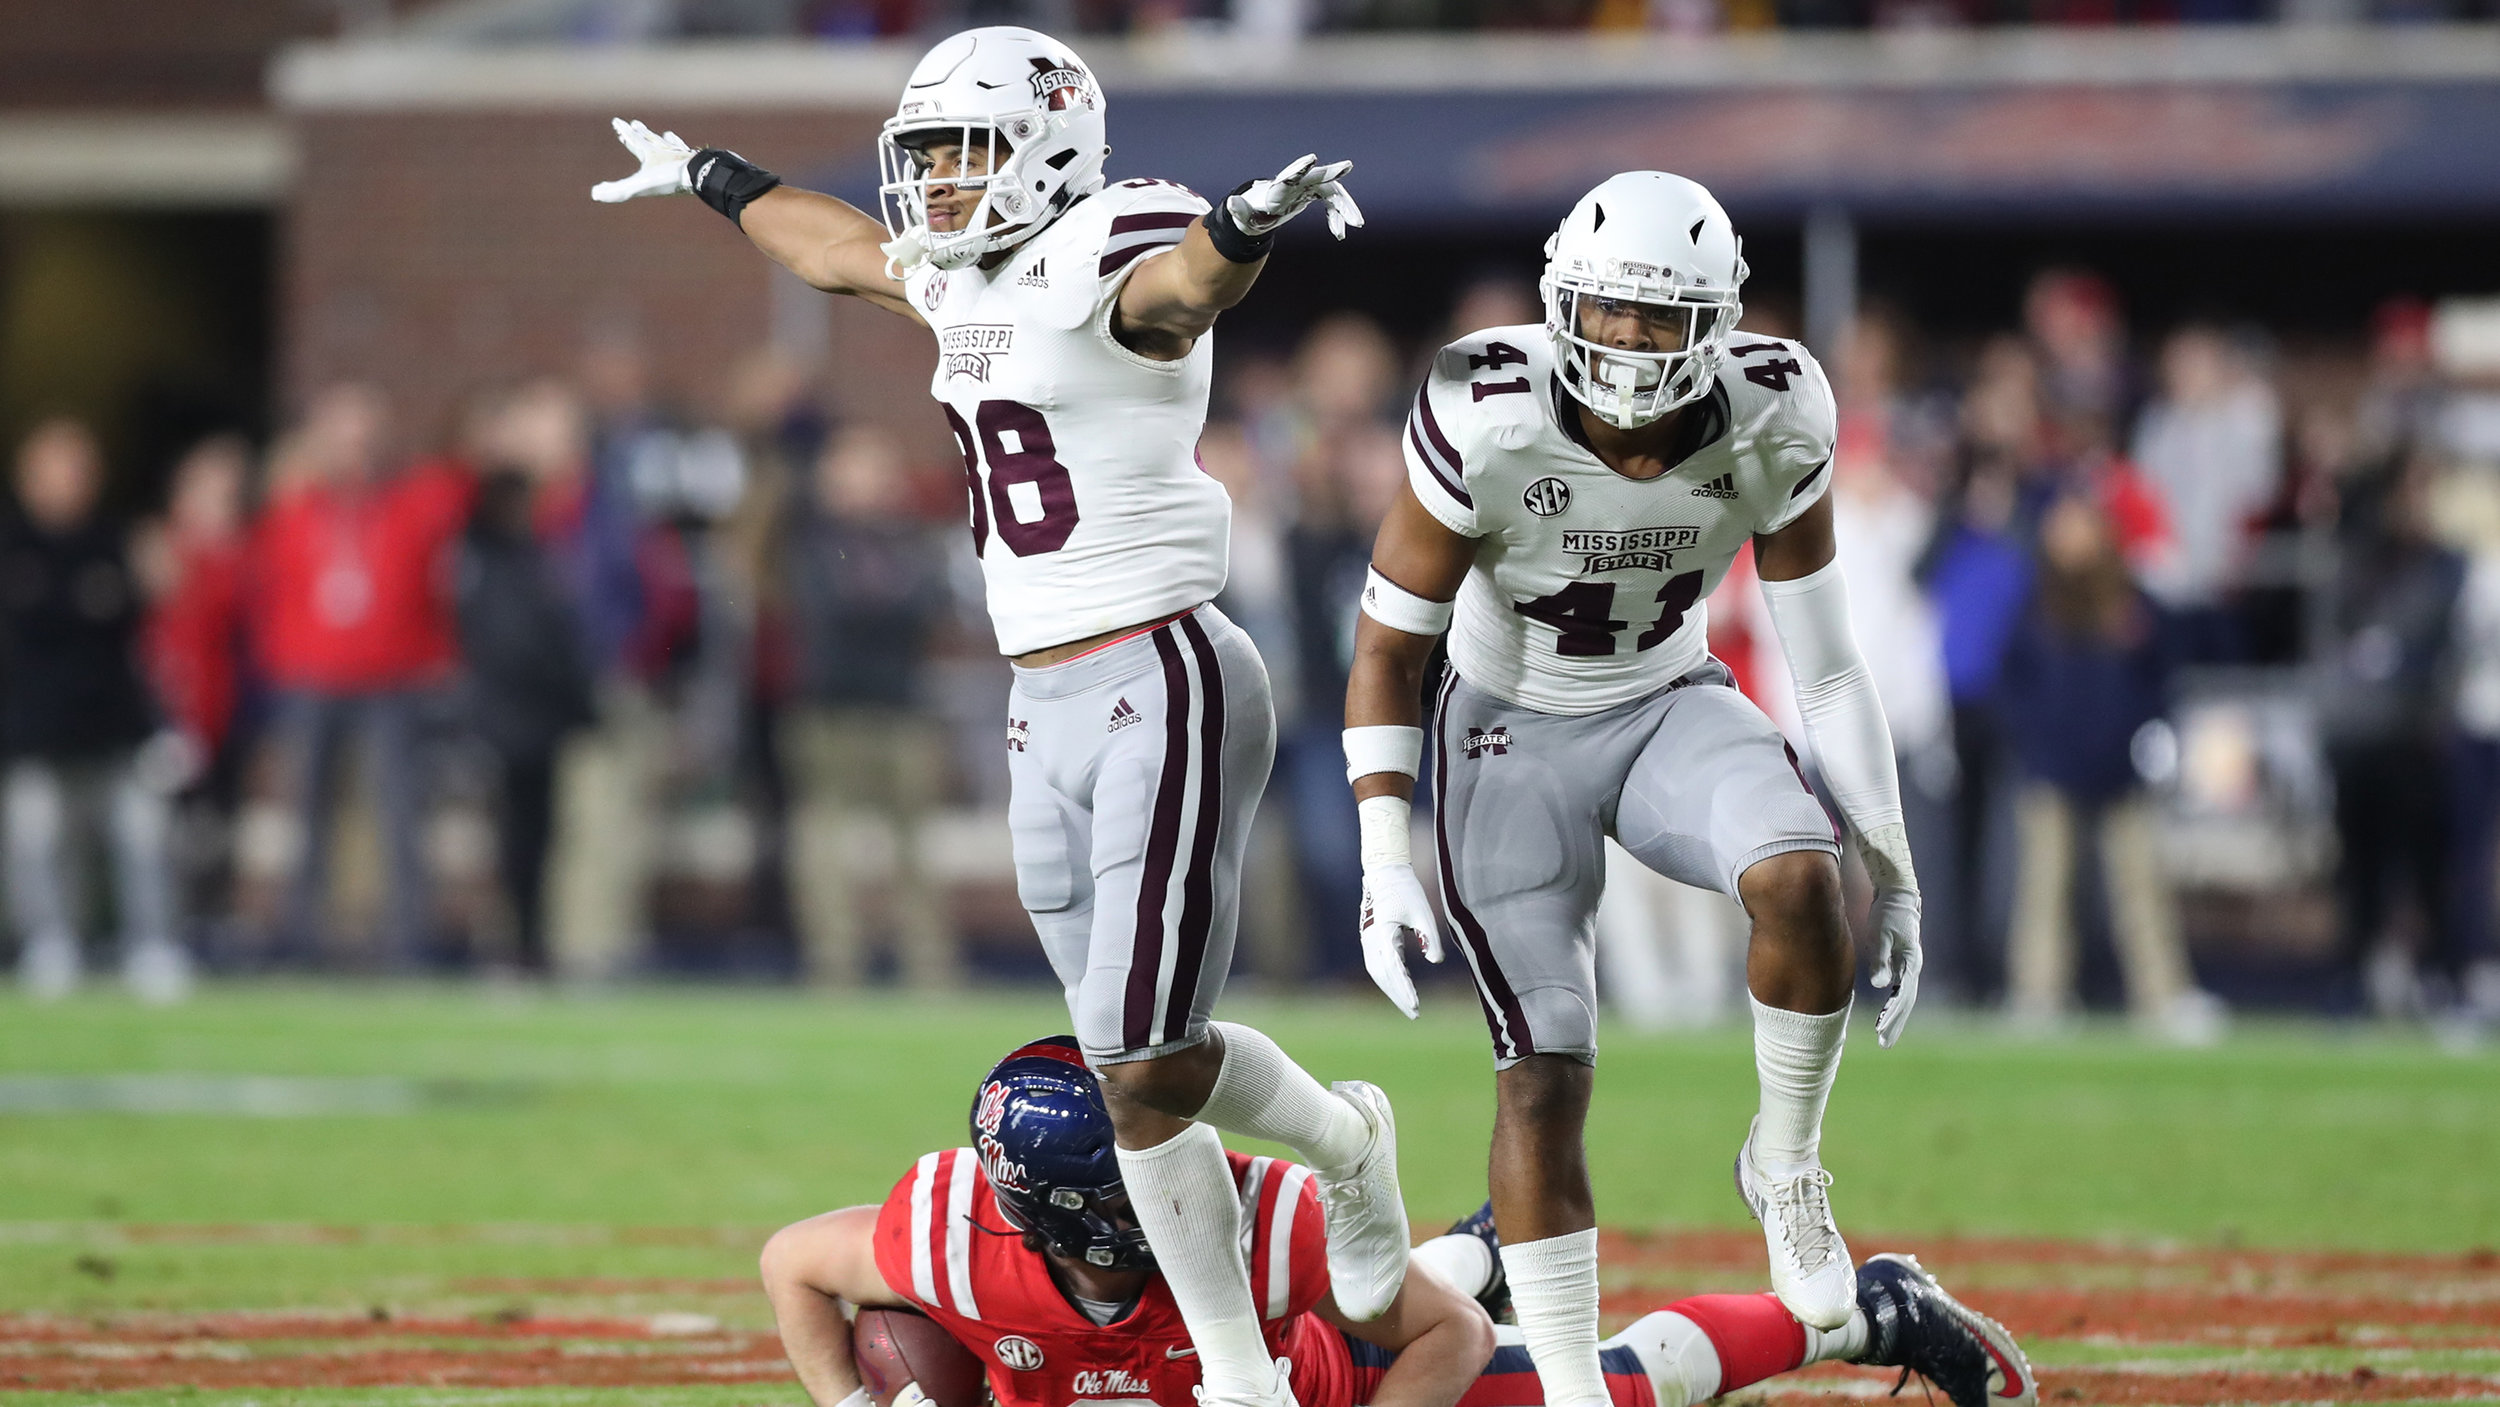 Picture credit: Mississippi State Athletics